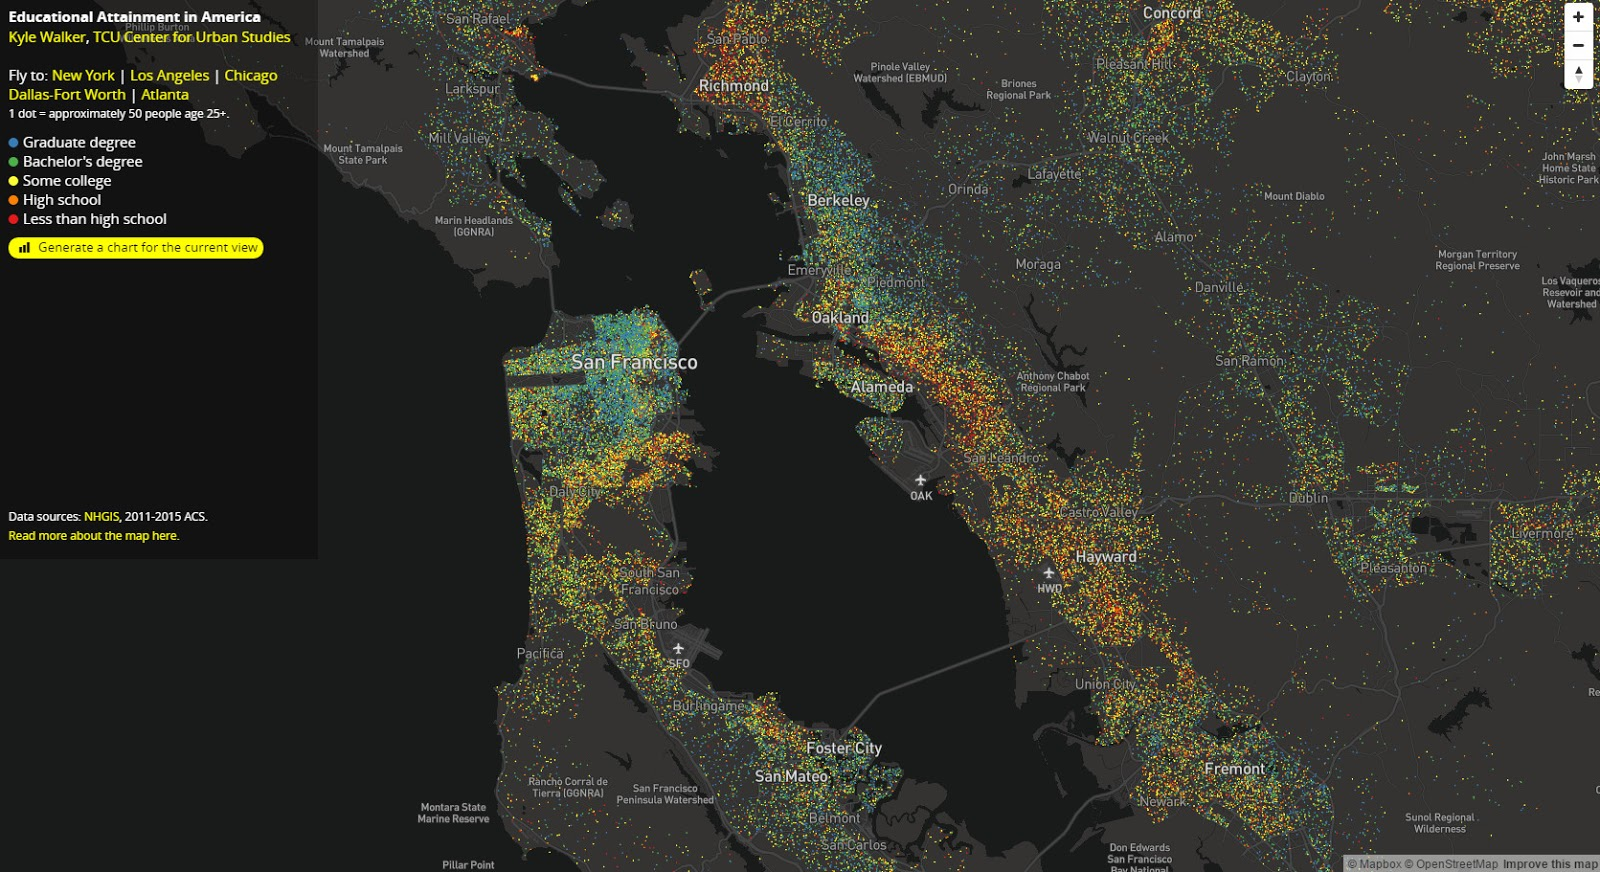 Educational Attainment in San Francisco